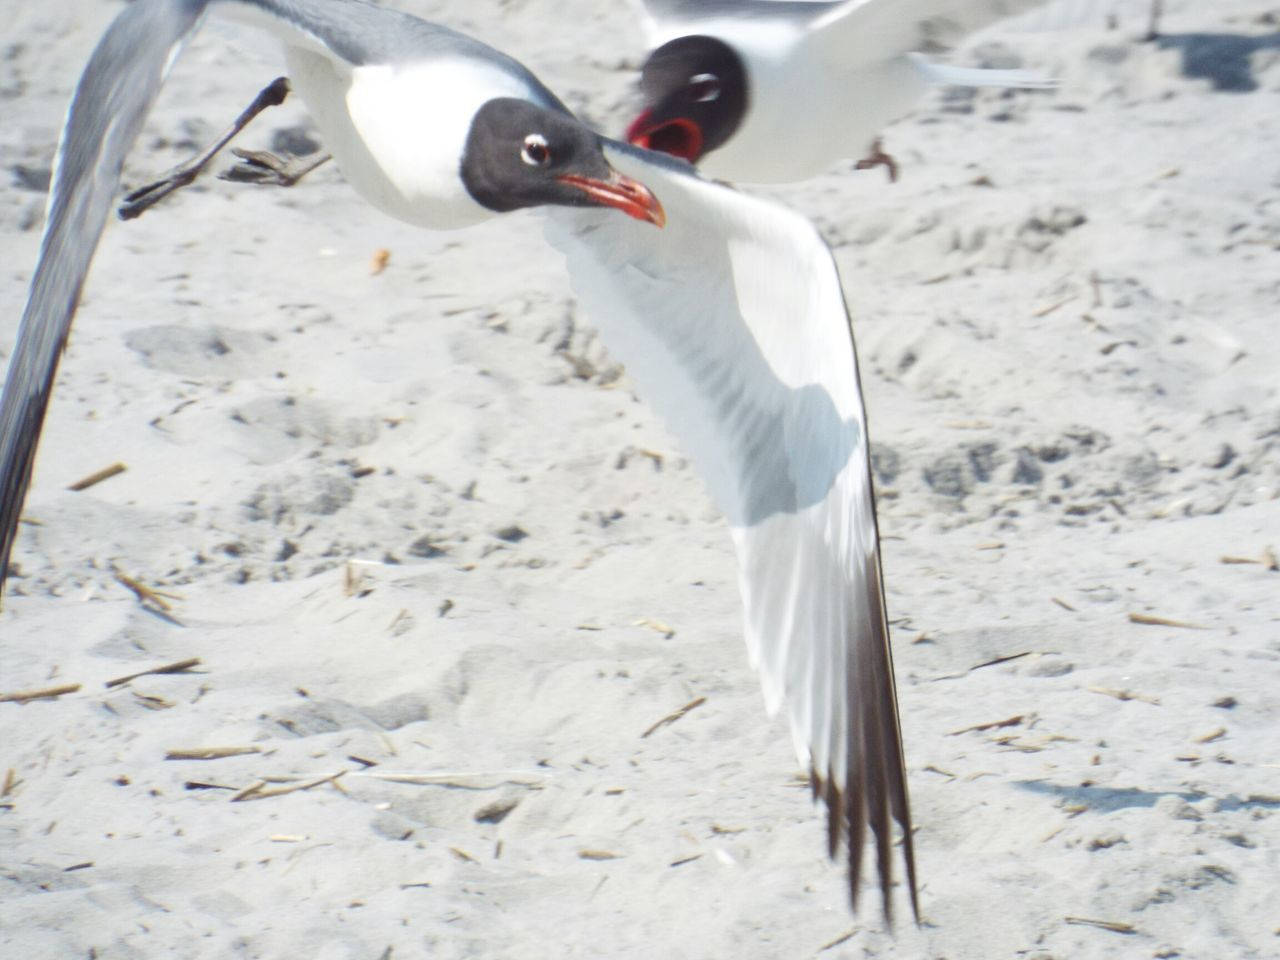 bird, animals in the wild, animal themes, one animal, animal wildlife, white color, beak, day, no people, nature, crane - bird, spread wings, outdoors, water, close-up